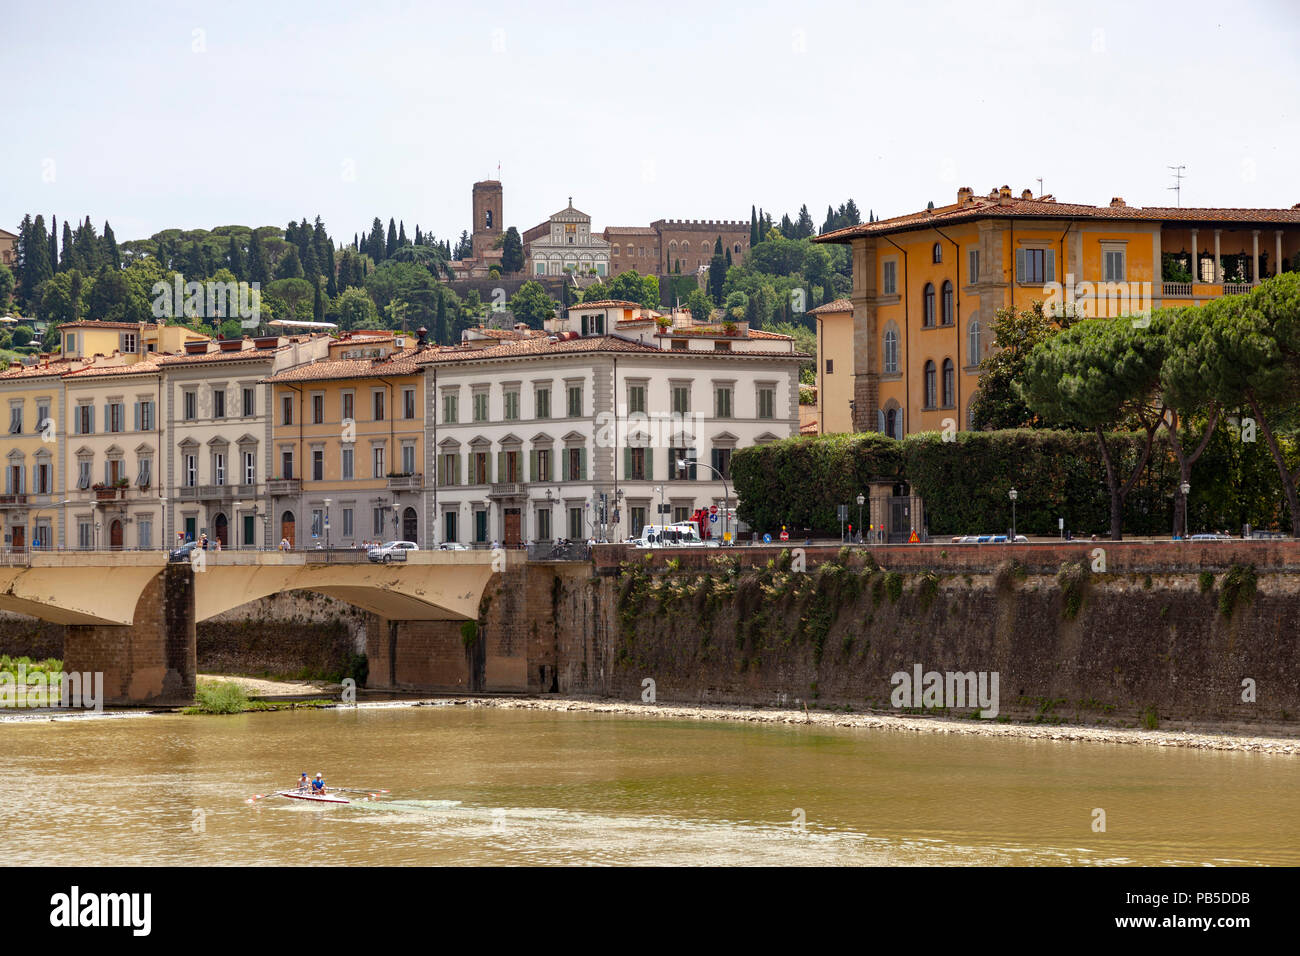 The left bank of the Arno river with in the background the San Miniato al Monte church built on one of the hills of Florence. La rive gauche de l'Arno - Stock Image